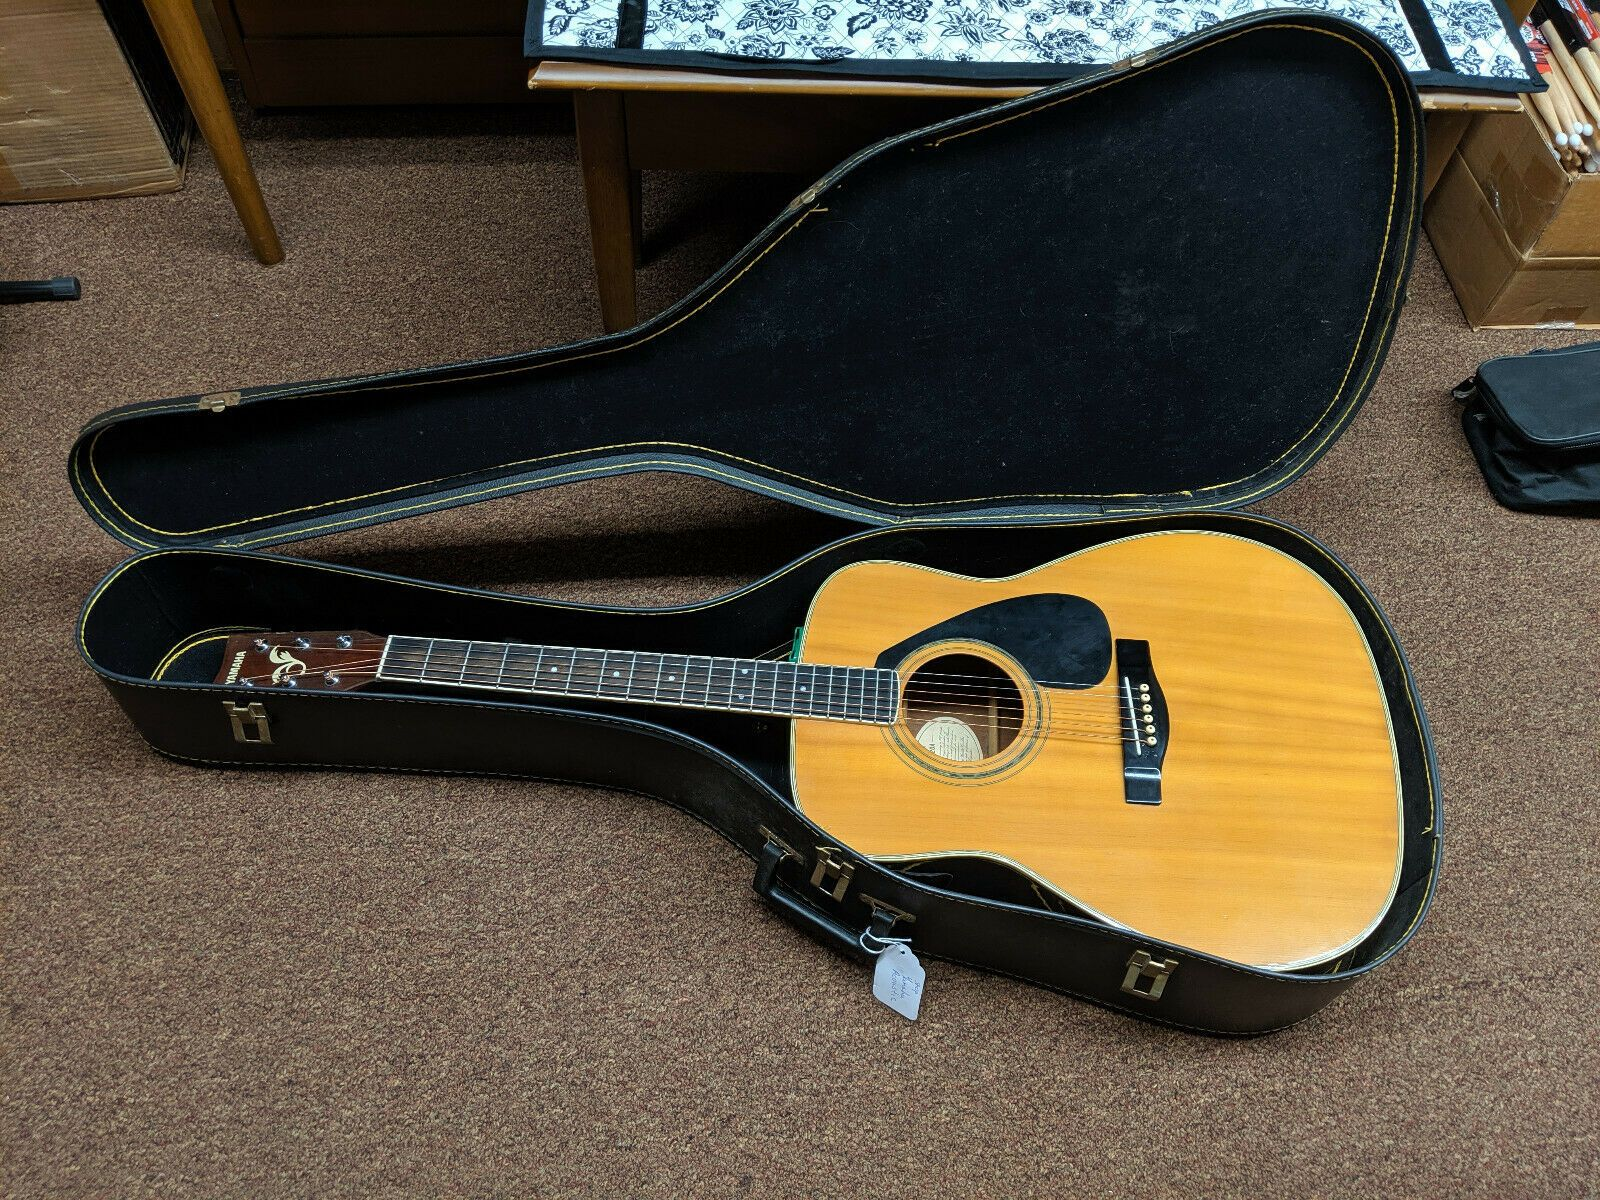 Details About Yamaha Fg 420a Acoustic Guitar With Hard Case Used Local Pickup In 2020